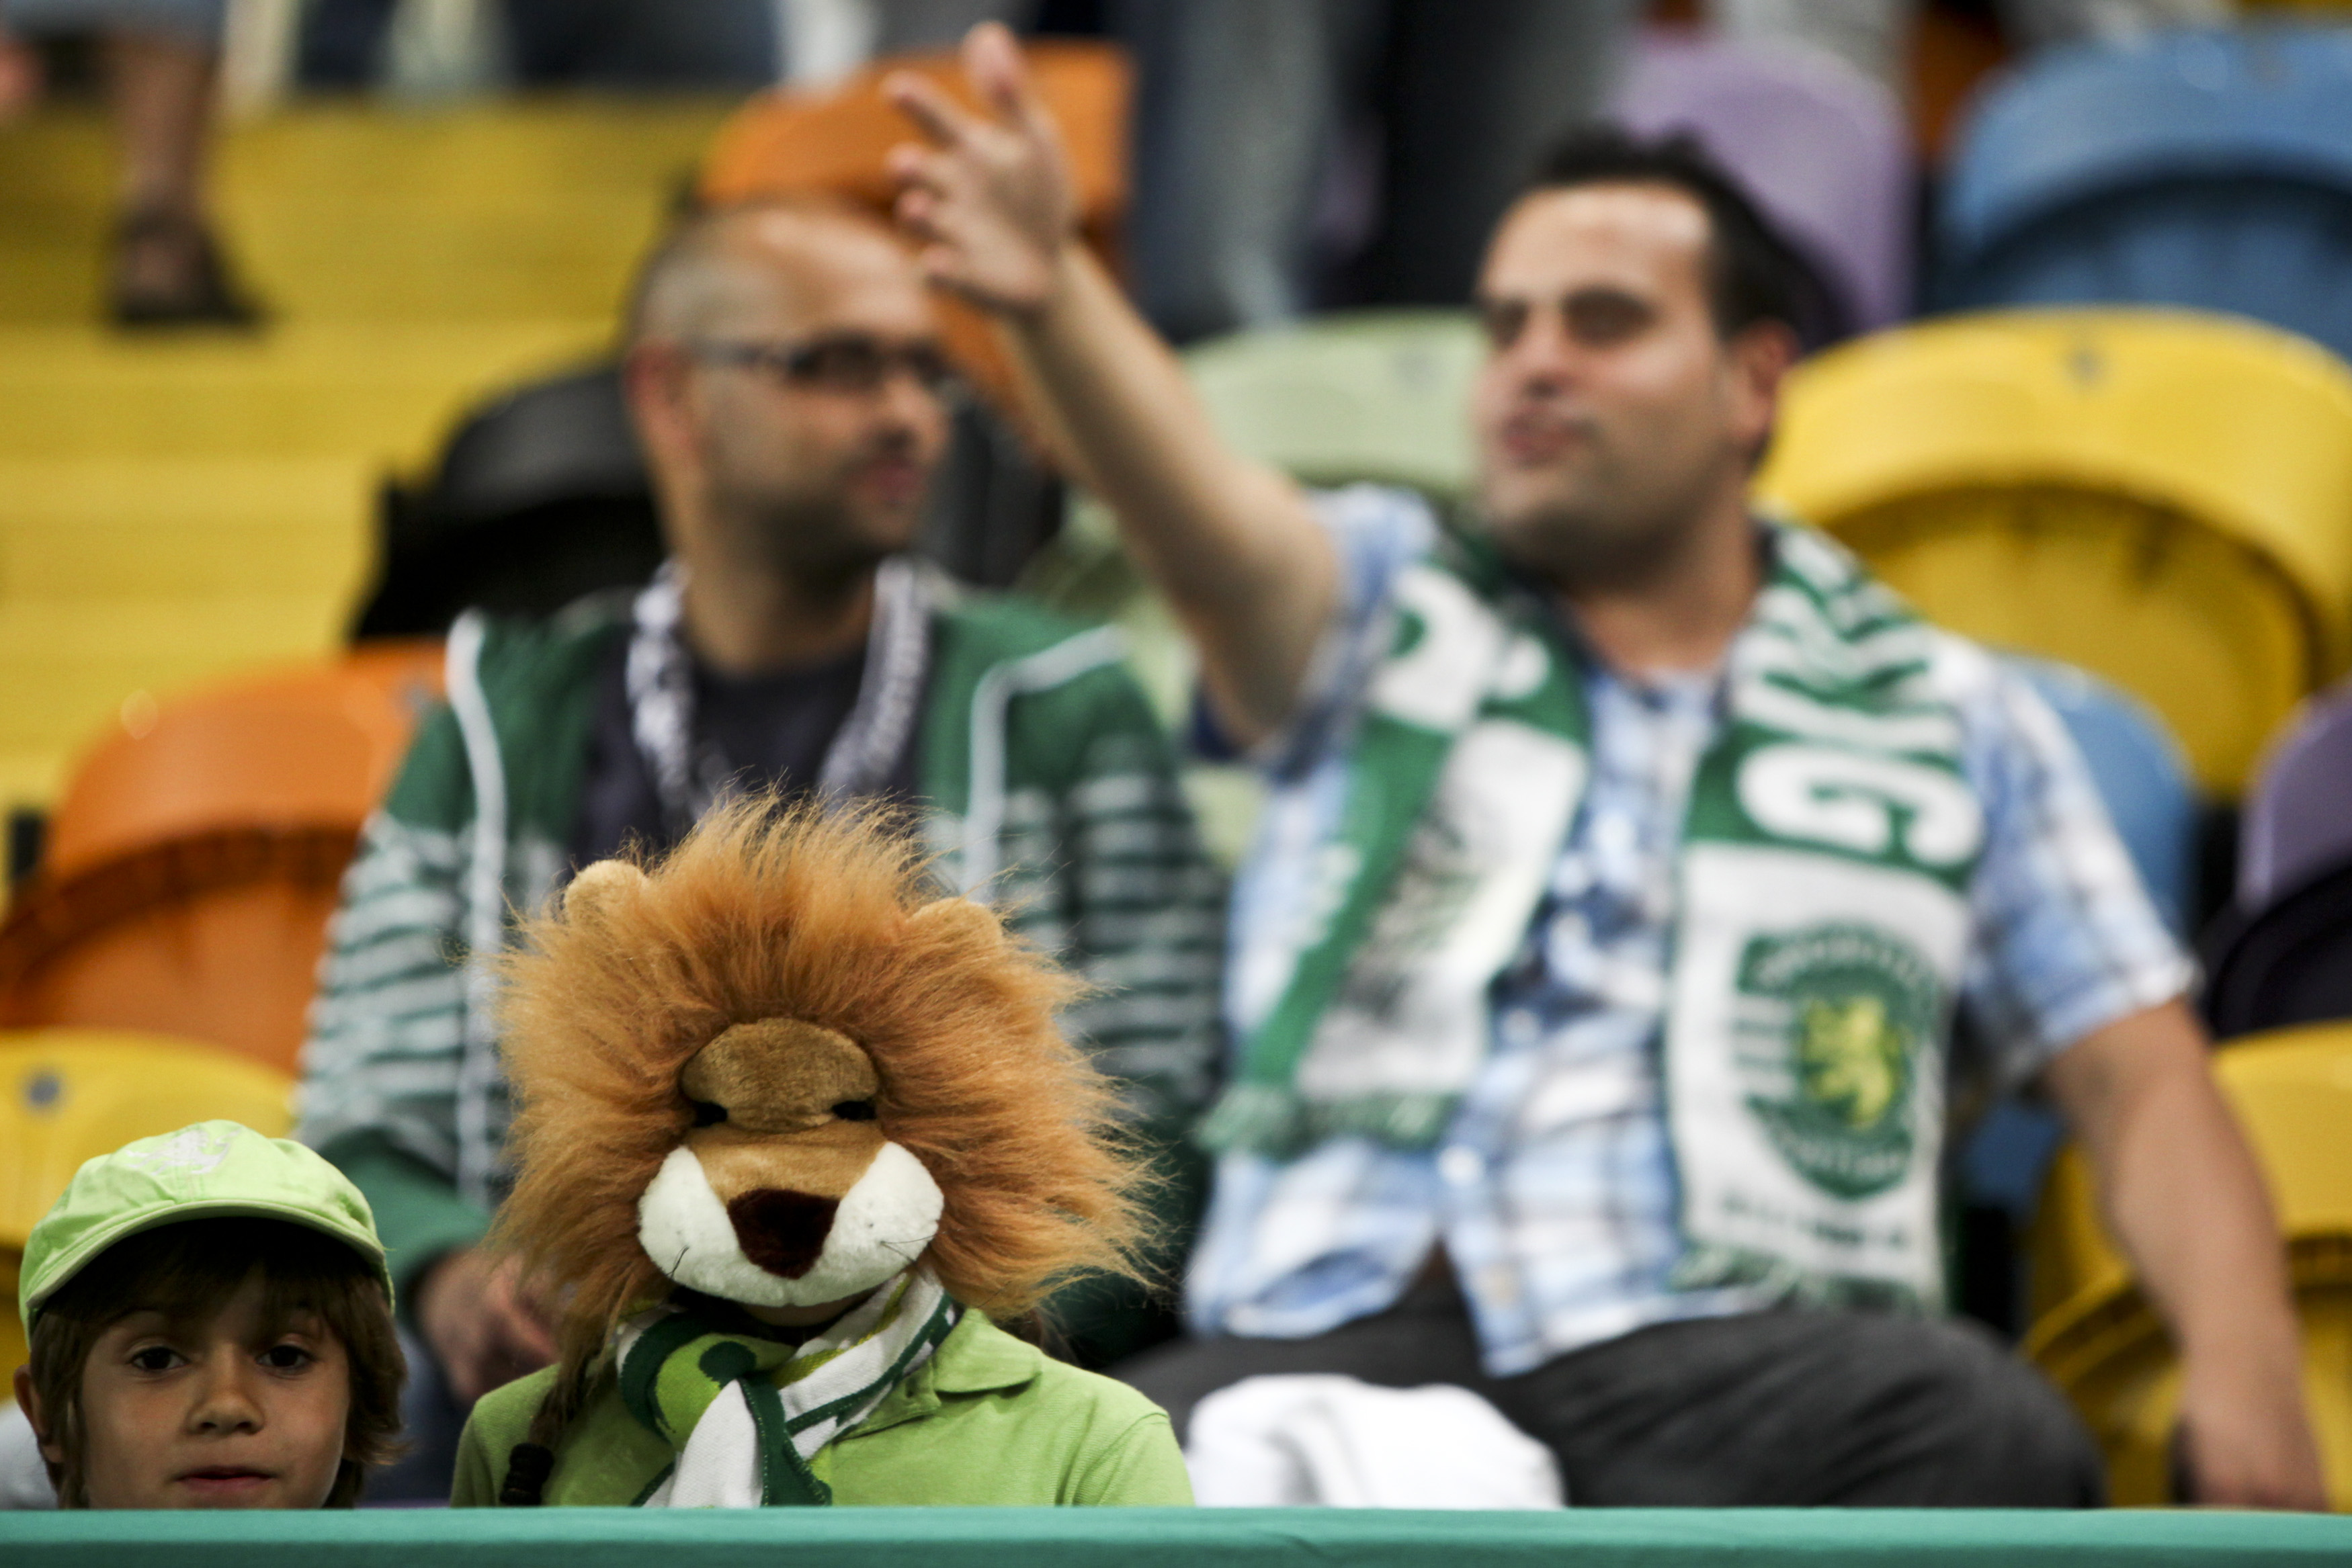 LISBON - AUGUST 13: A fan of Sporting Clube de Portugal before the Portuguese Primeira Liga ZON Sagres match between Sporting Lisbon and Olhanense at the Alvalade Stadium on August 13, 2011 in Lisbon,Portugal. (Patricia De Melo Moreira/EuroFootball/Getty Images)